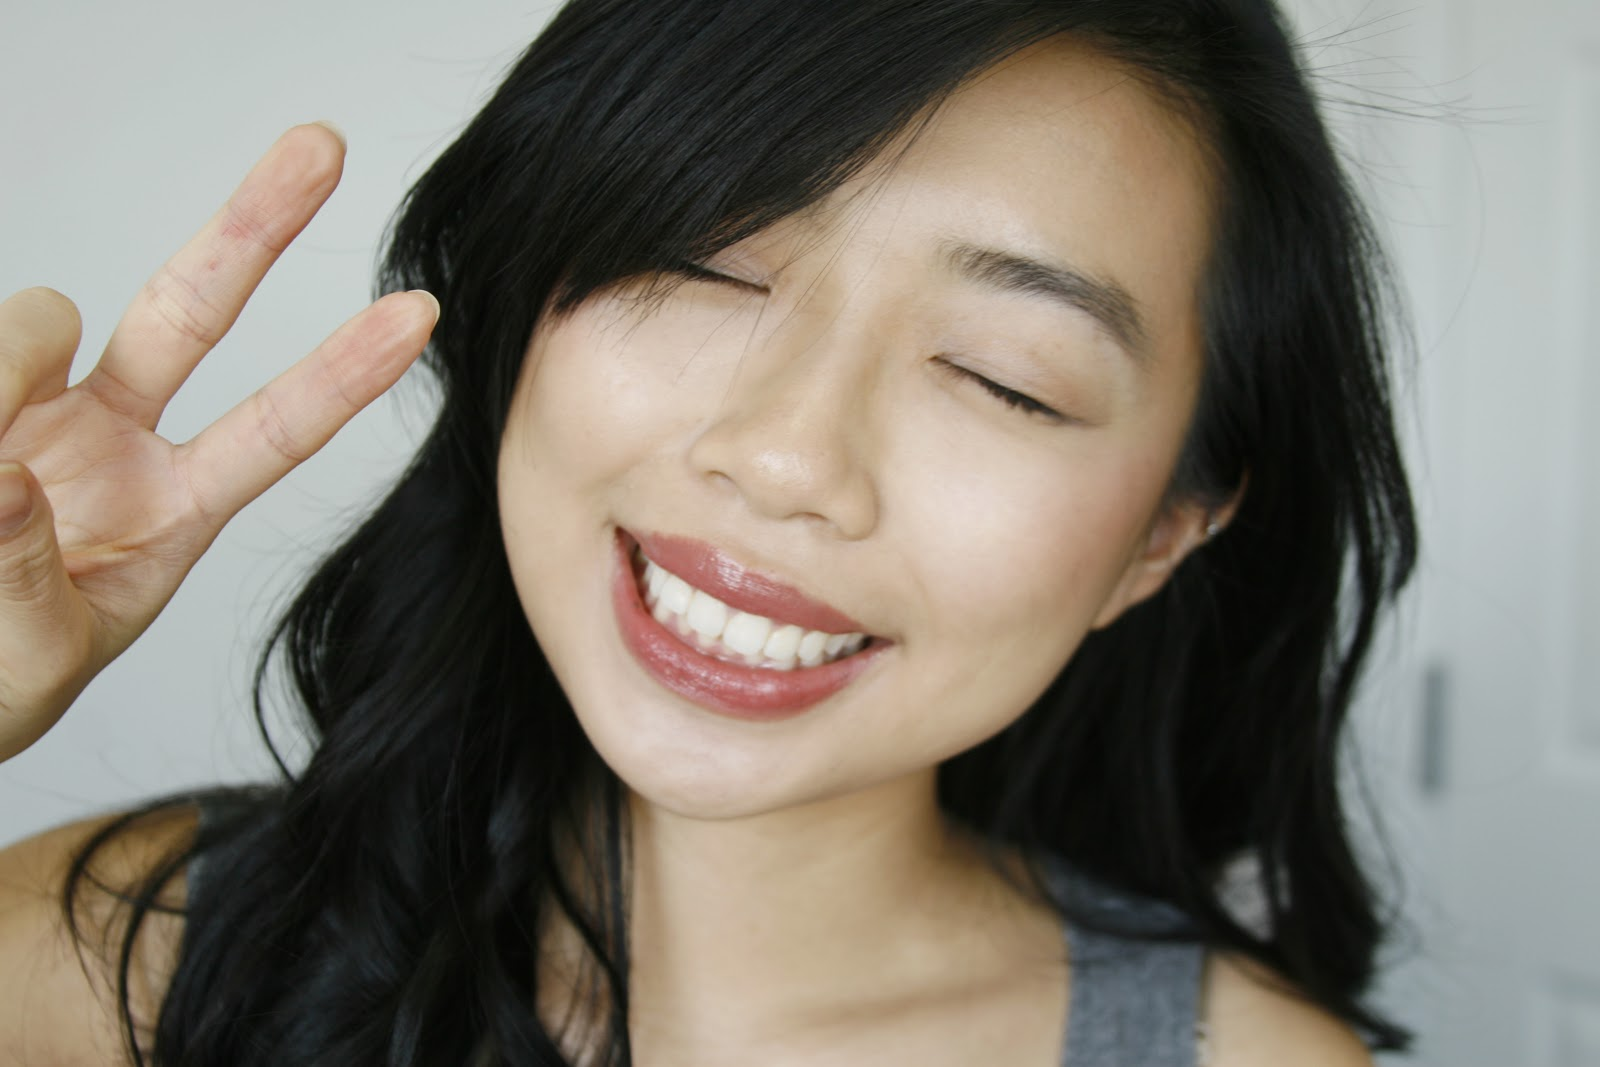 fun size beauty: Whats on My Face #6 - Makeup for Grad Photos